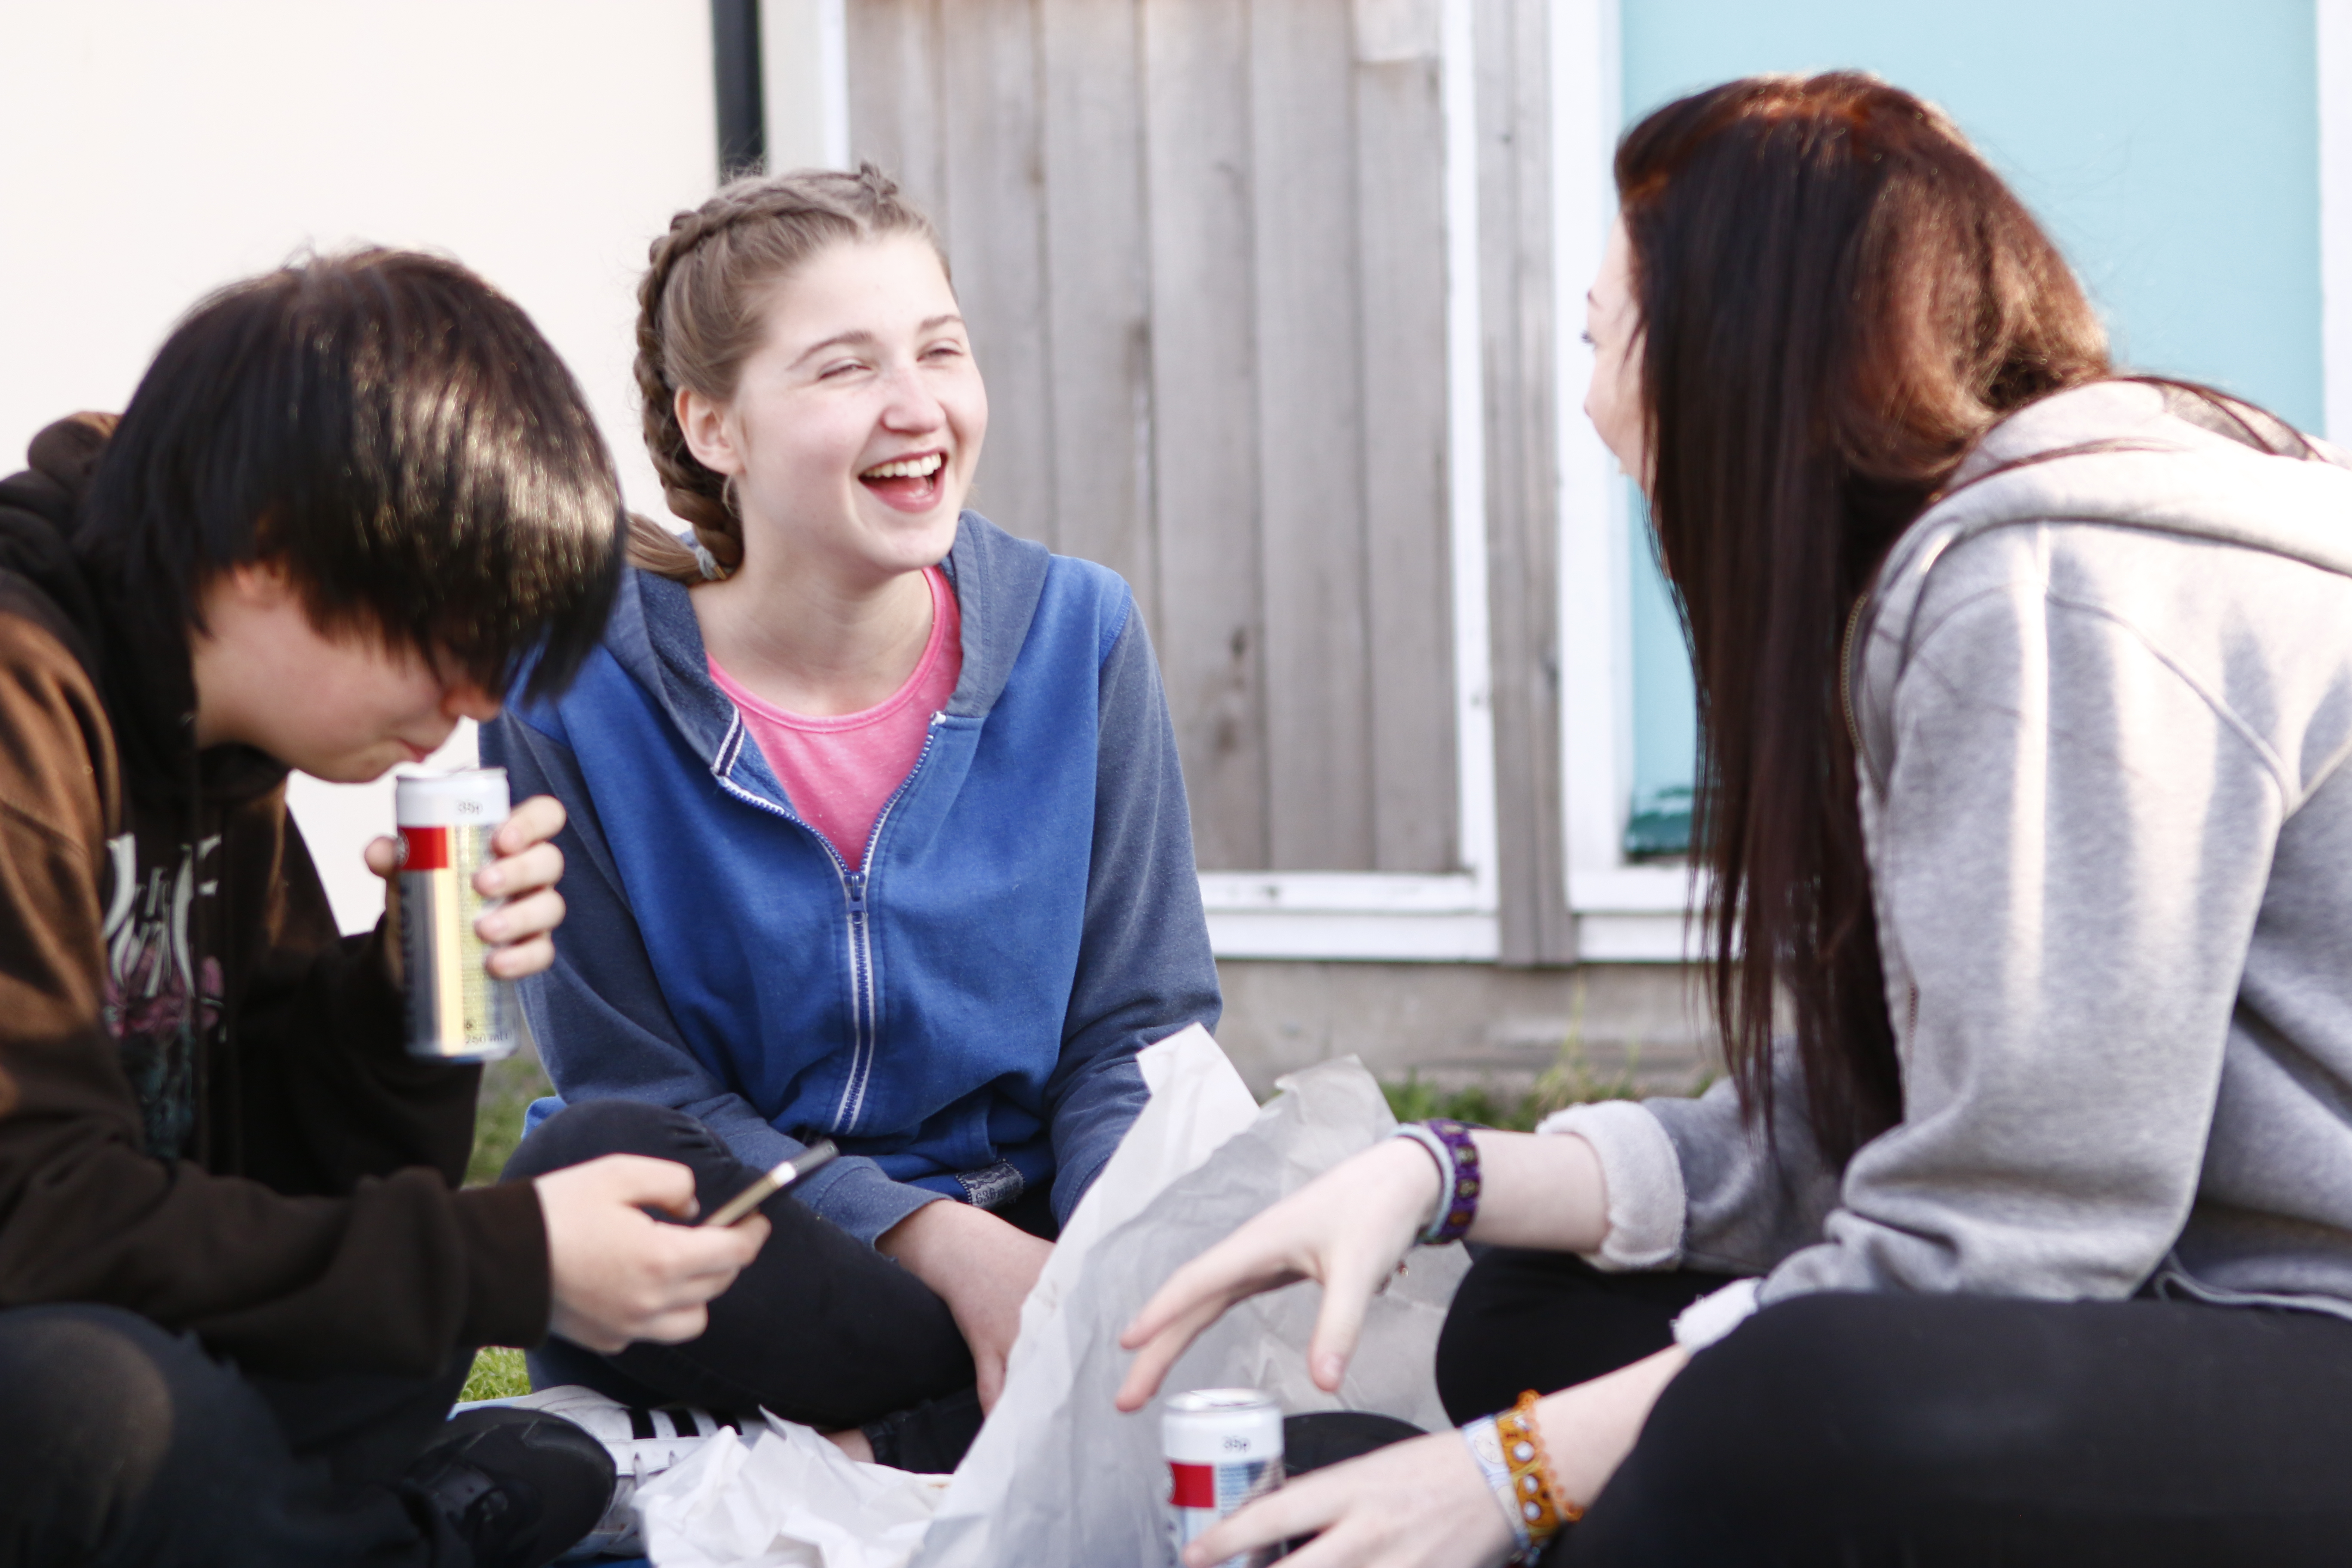 Two girls laughing with each other, with a boy looking at his phone beside them